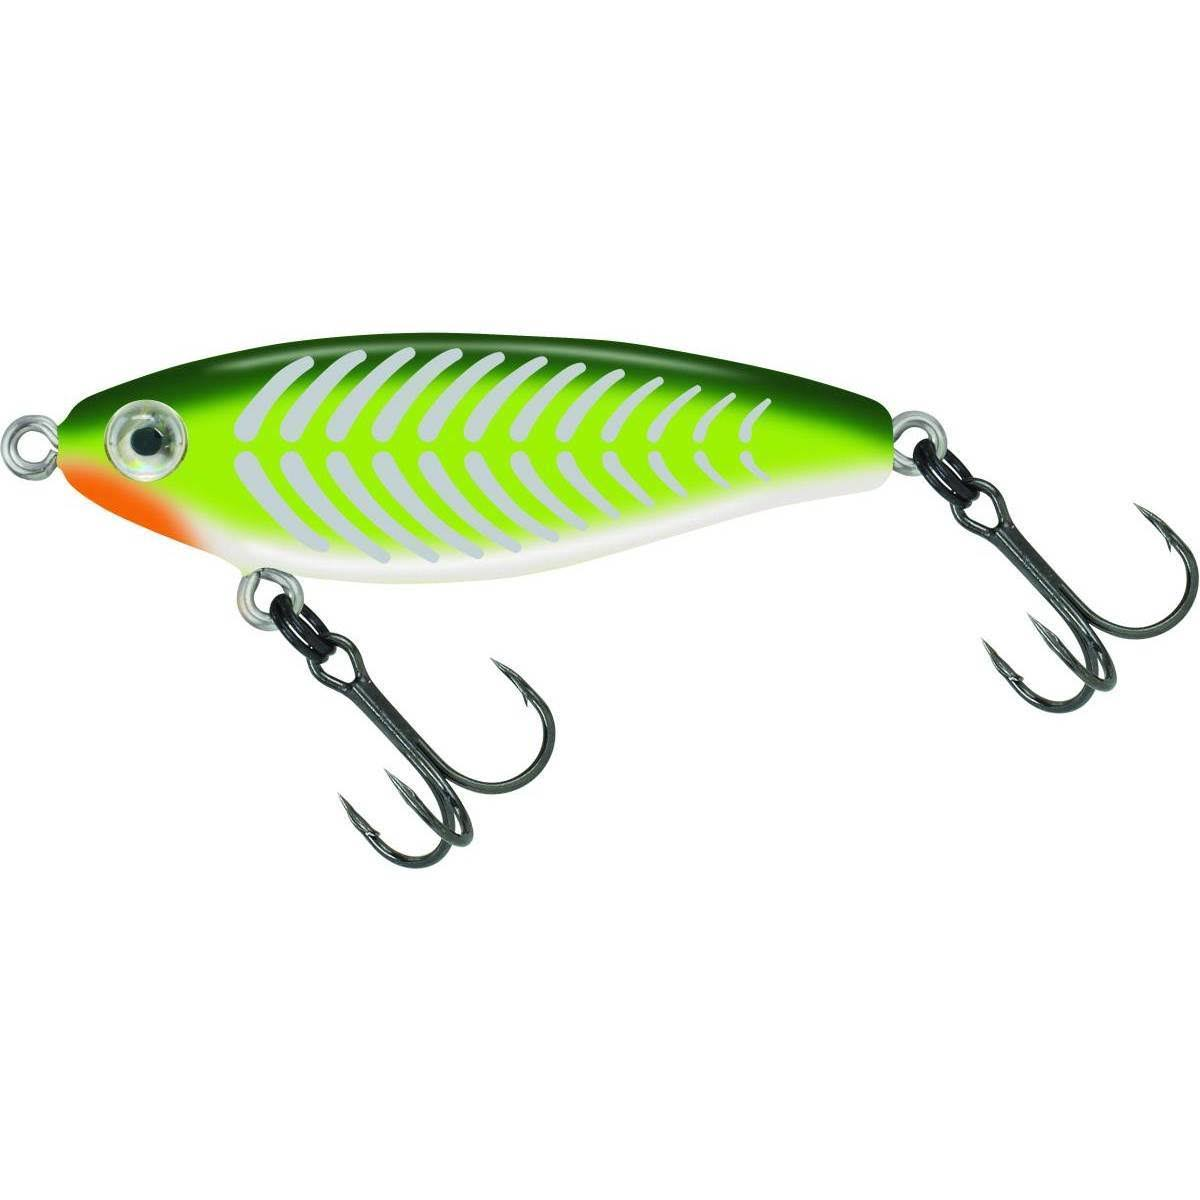 MirrOlure MirrOdine C Eye Pro Series Crankbaits